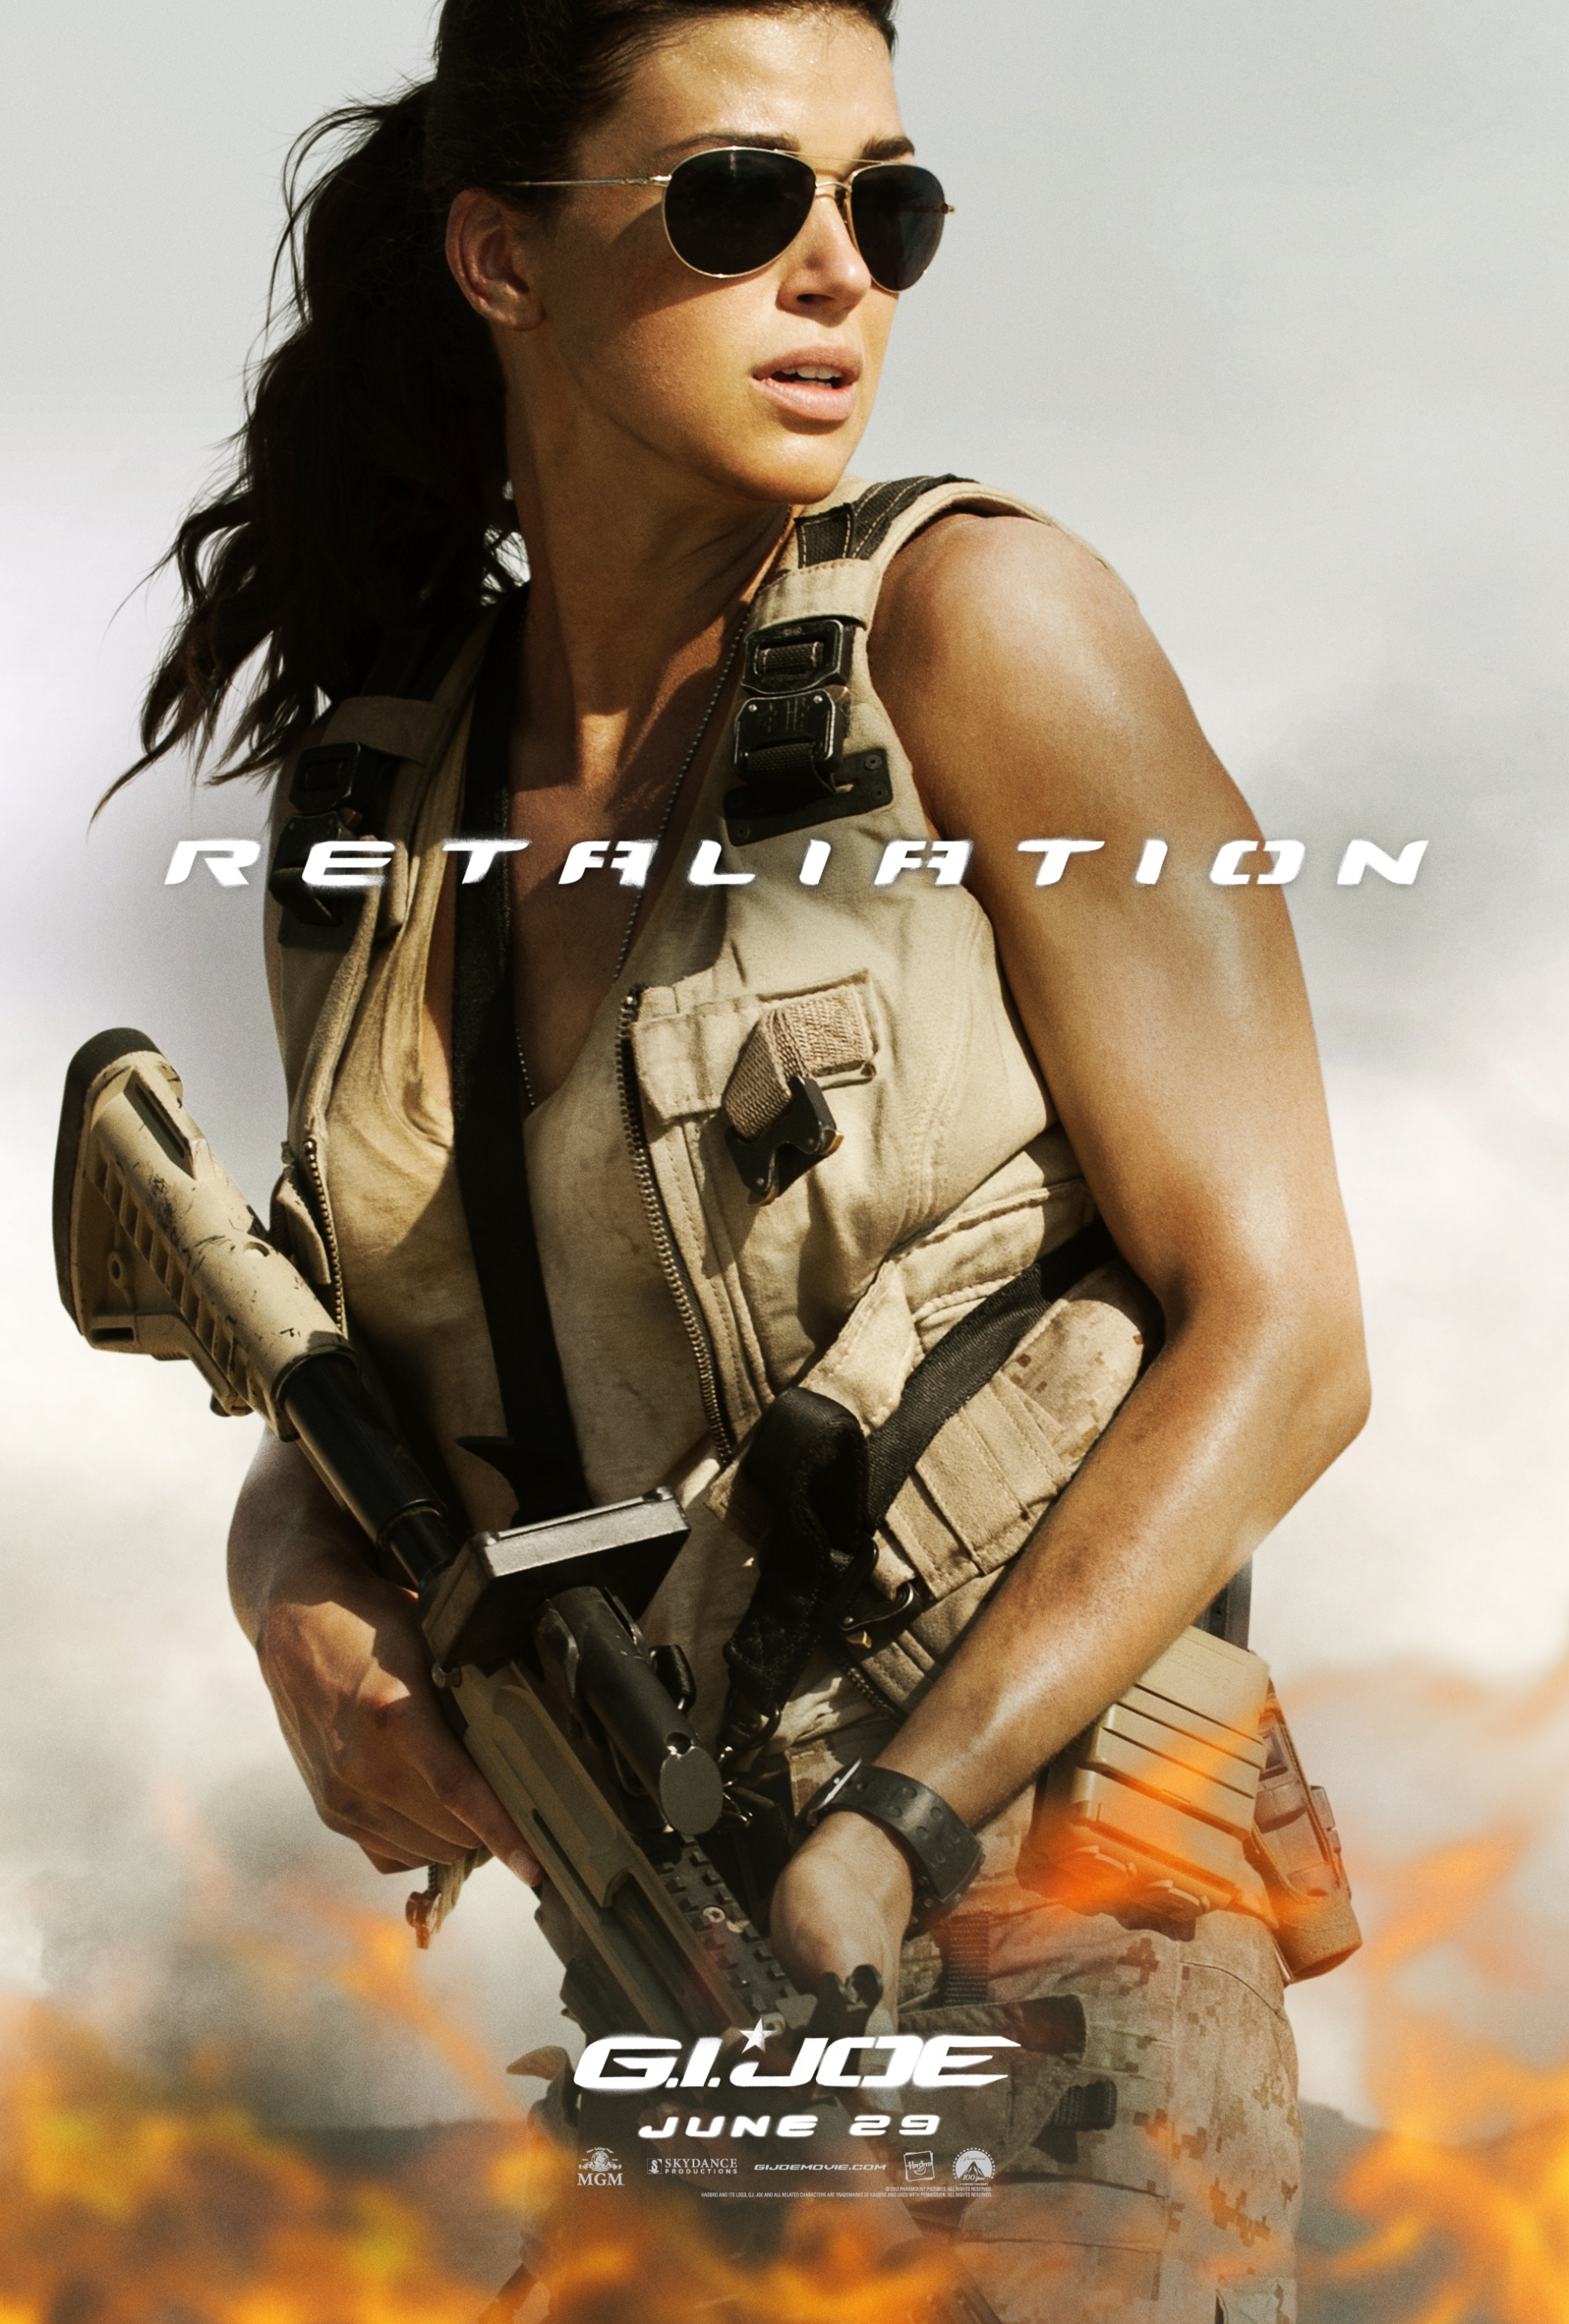 G.I. Joe: Retaliation - Movie Poster #8 (Original)